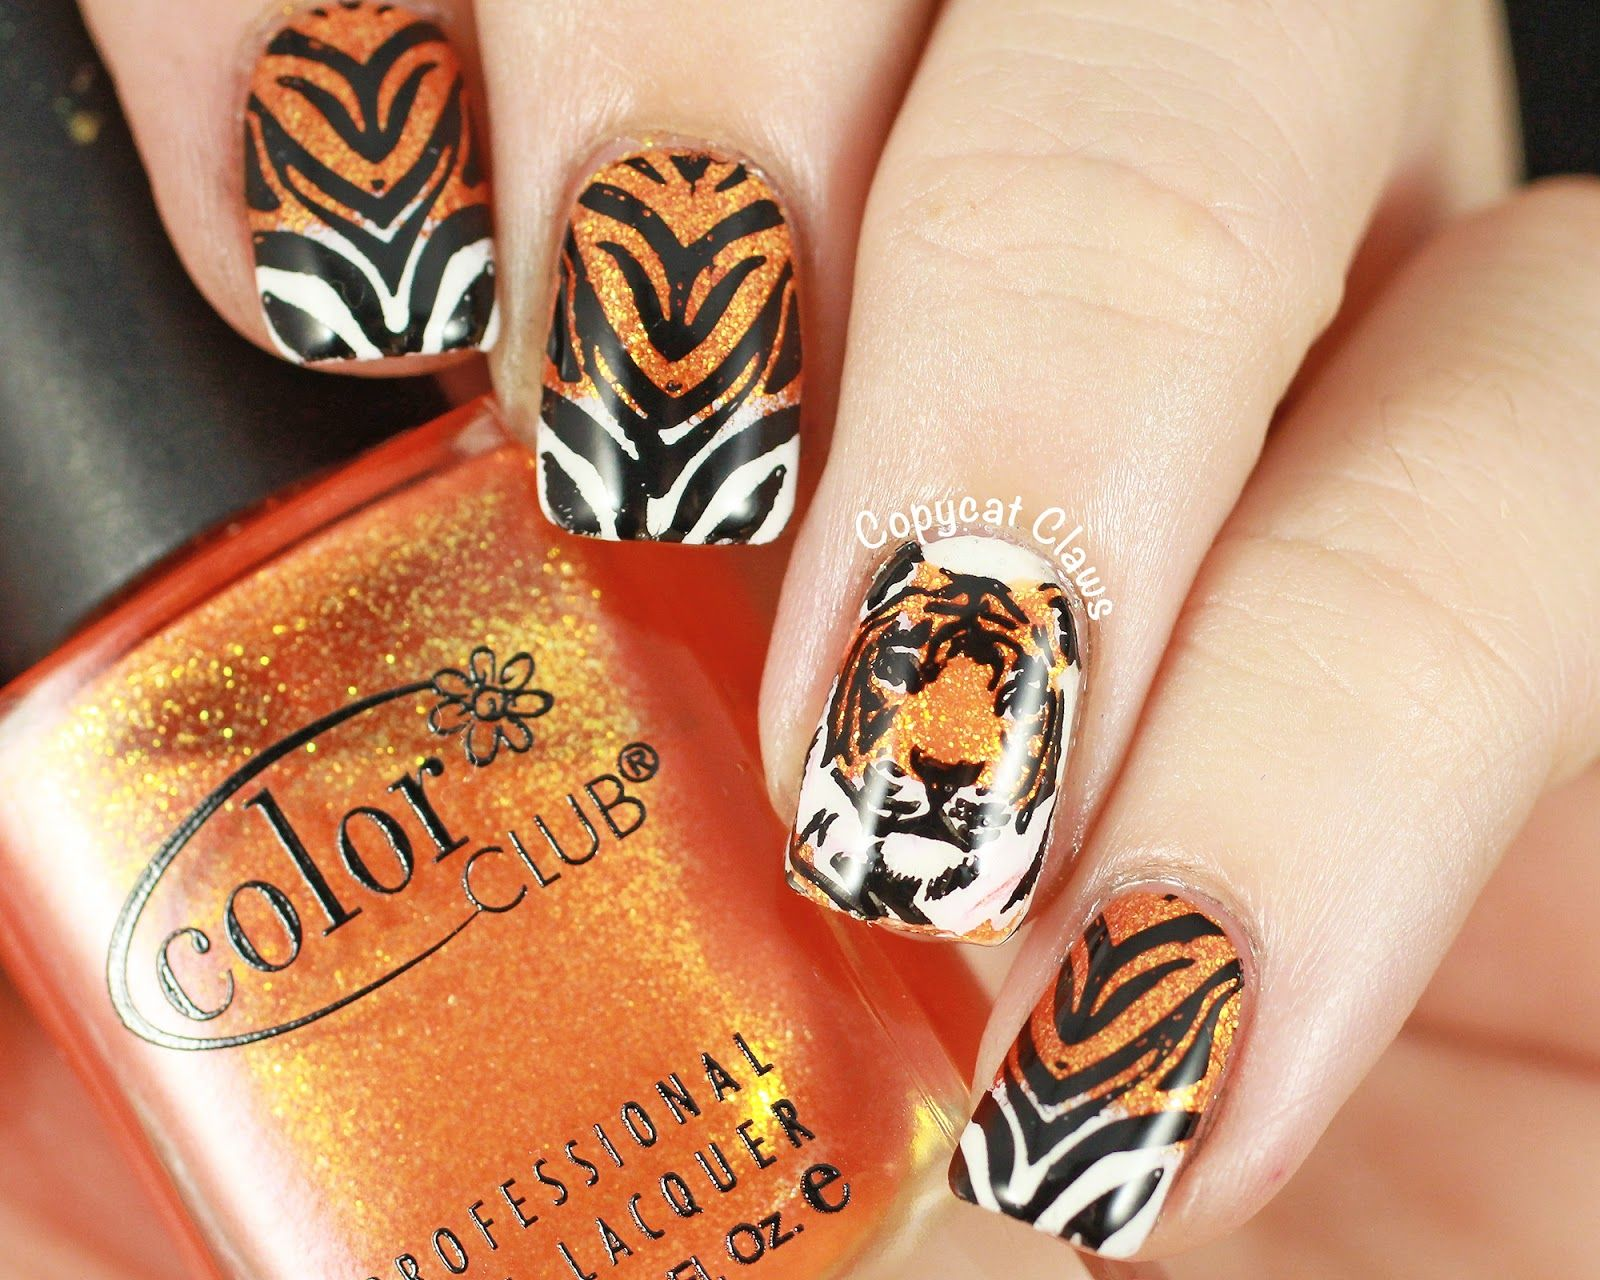 Copycat Claws: Sunday Stamping - Tiger Nails | Nails | Pinterest ...